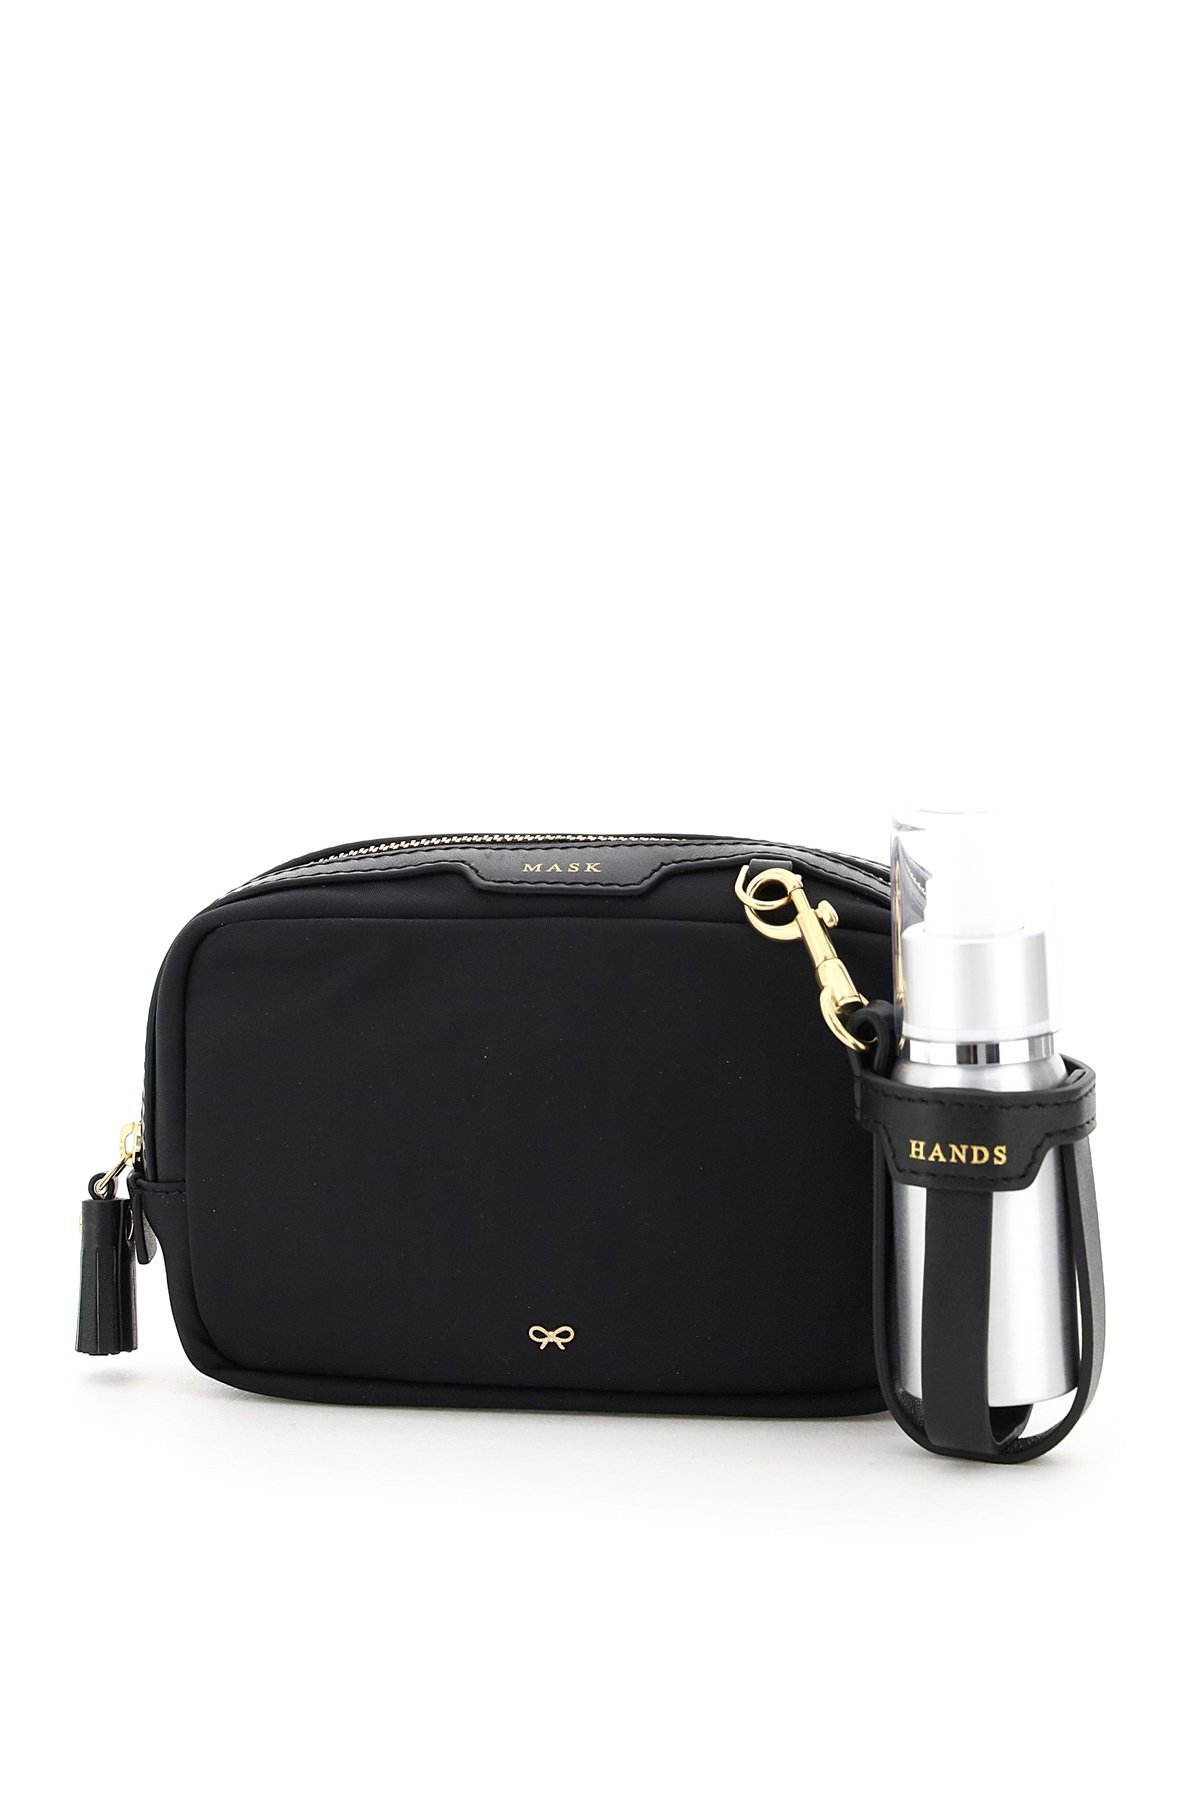 Anya hindmarch pouch nylon kit ppe